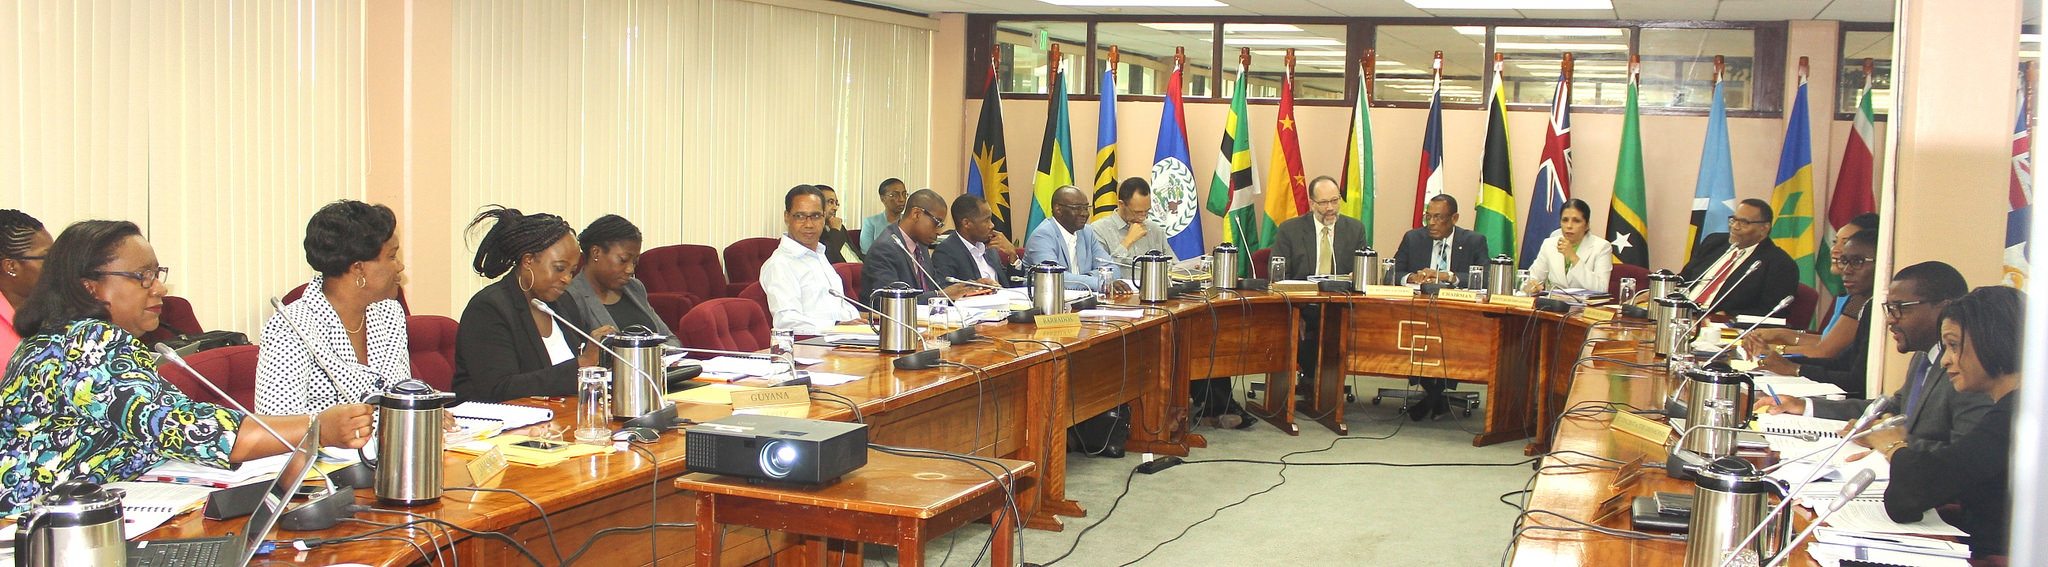 CARICOM Ambassadors Meeting, 6 December 2018